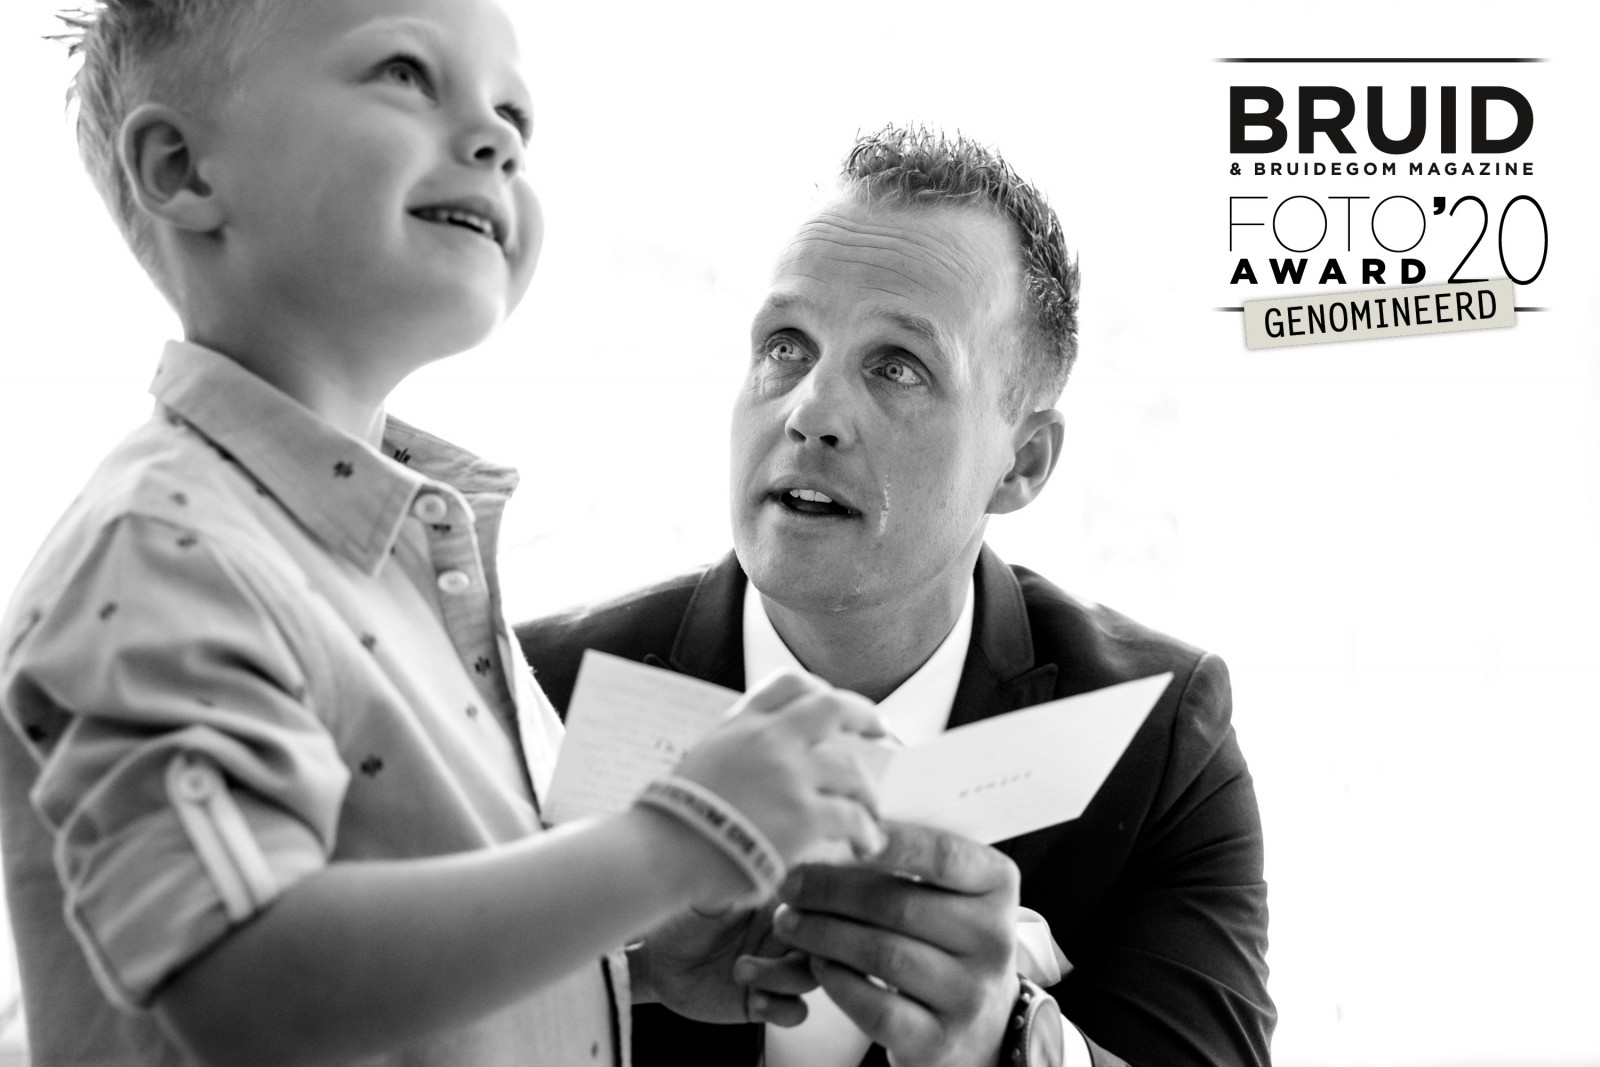 Bruidsfoto Award 2020 iSi weddings Indra Simons